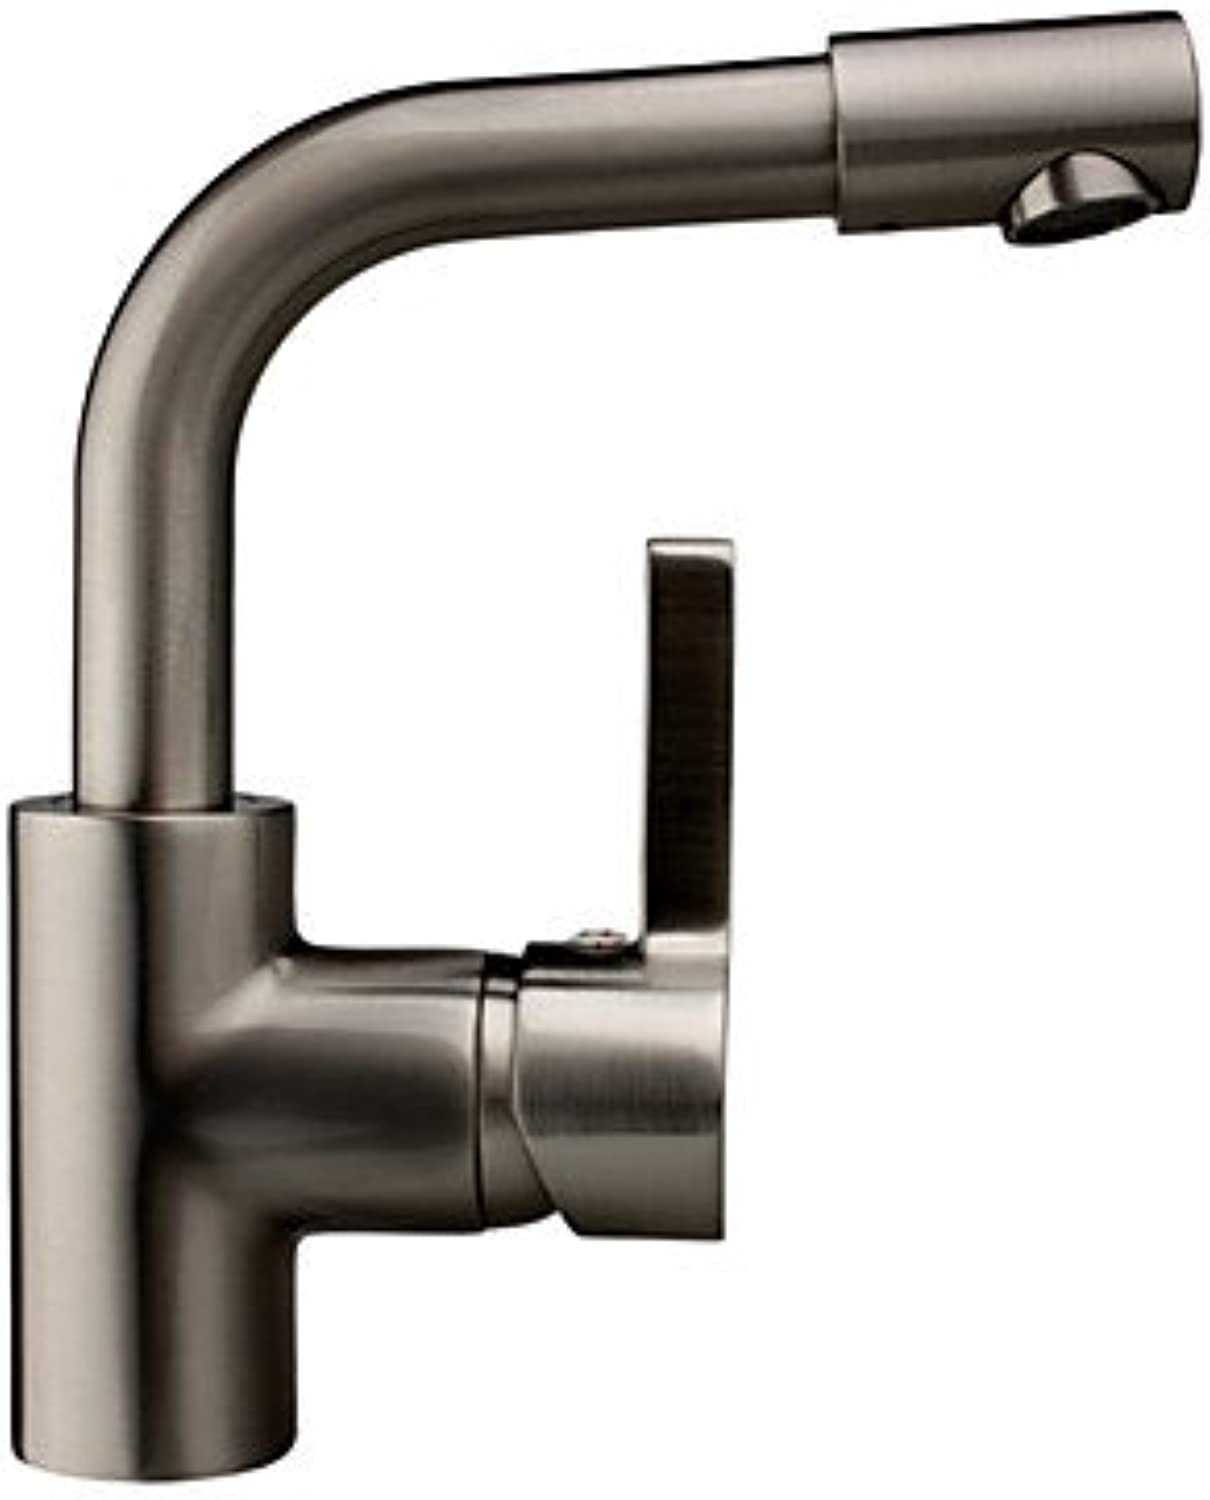 Lozse Contemporary Solid Brass Kitchen tap - Nickel Brushed Finish